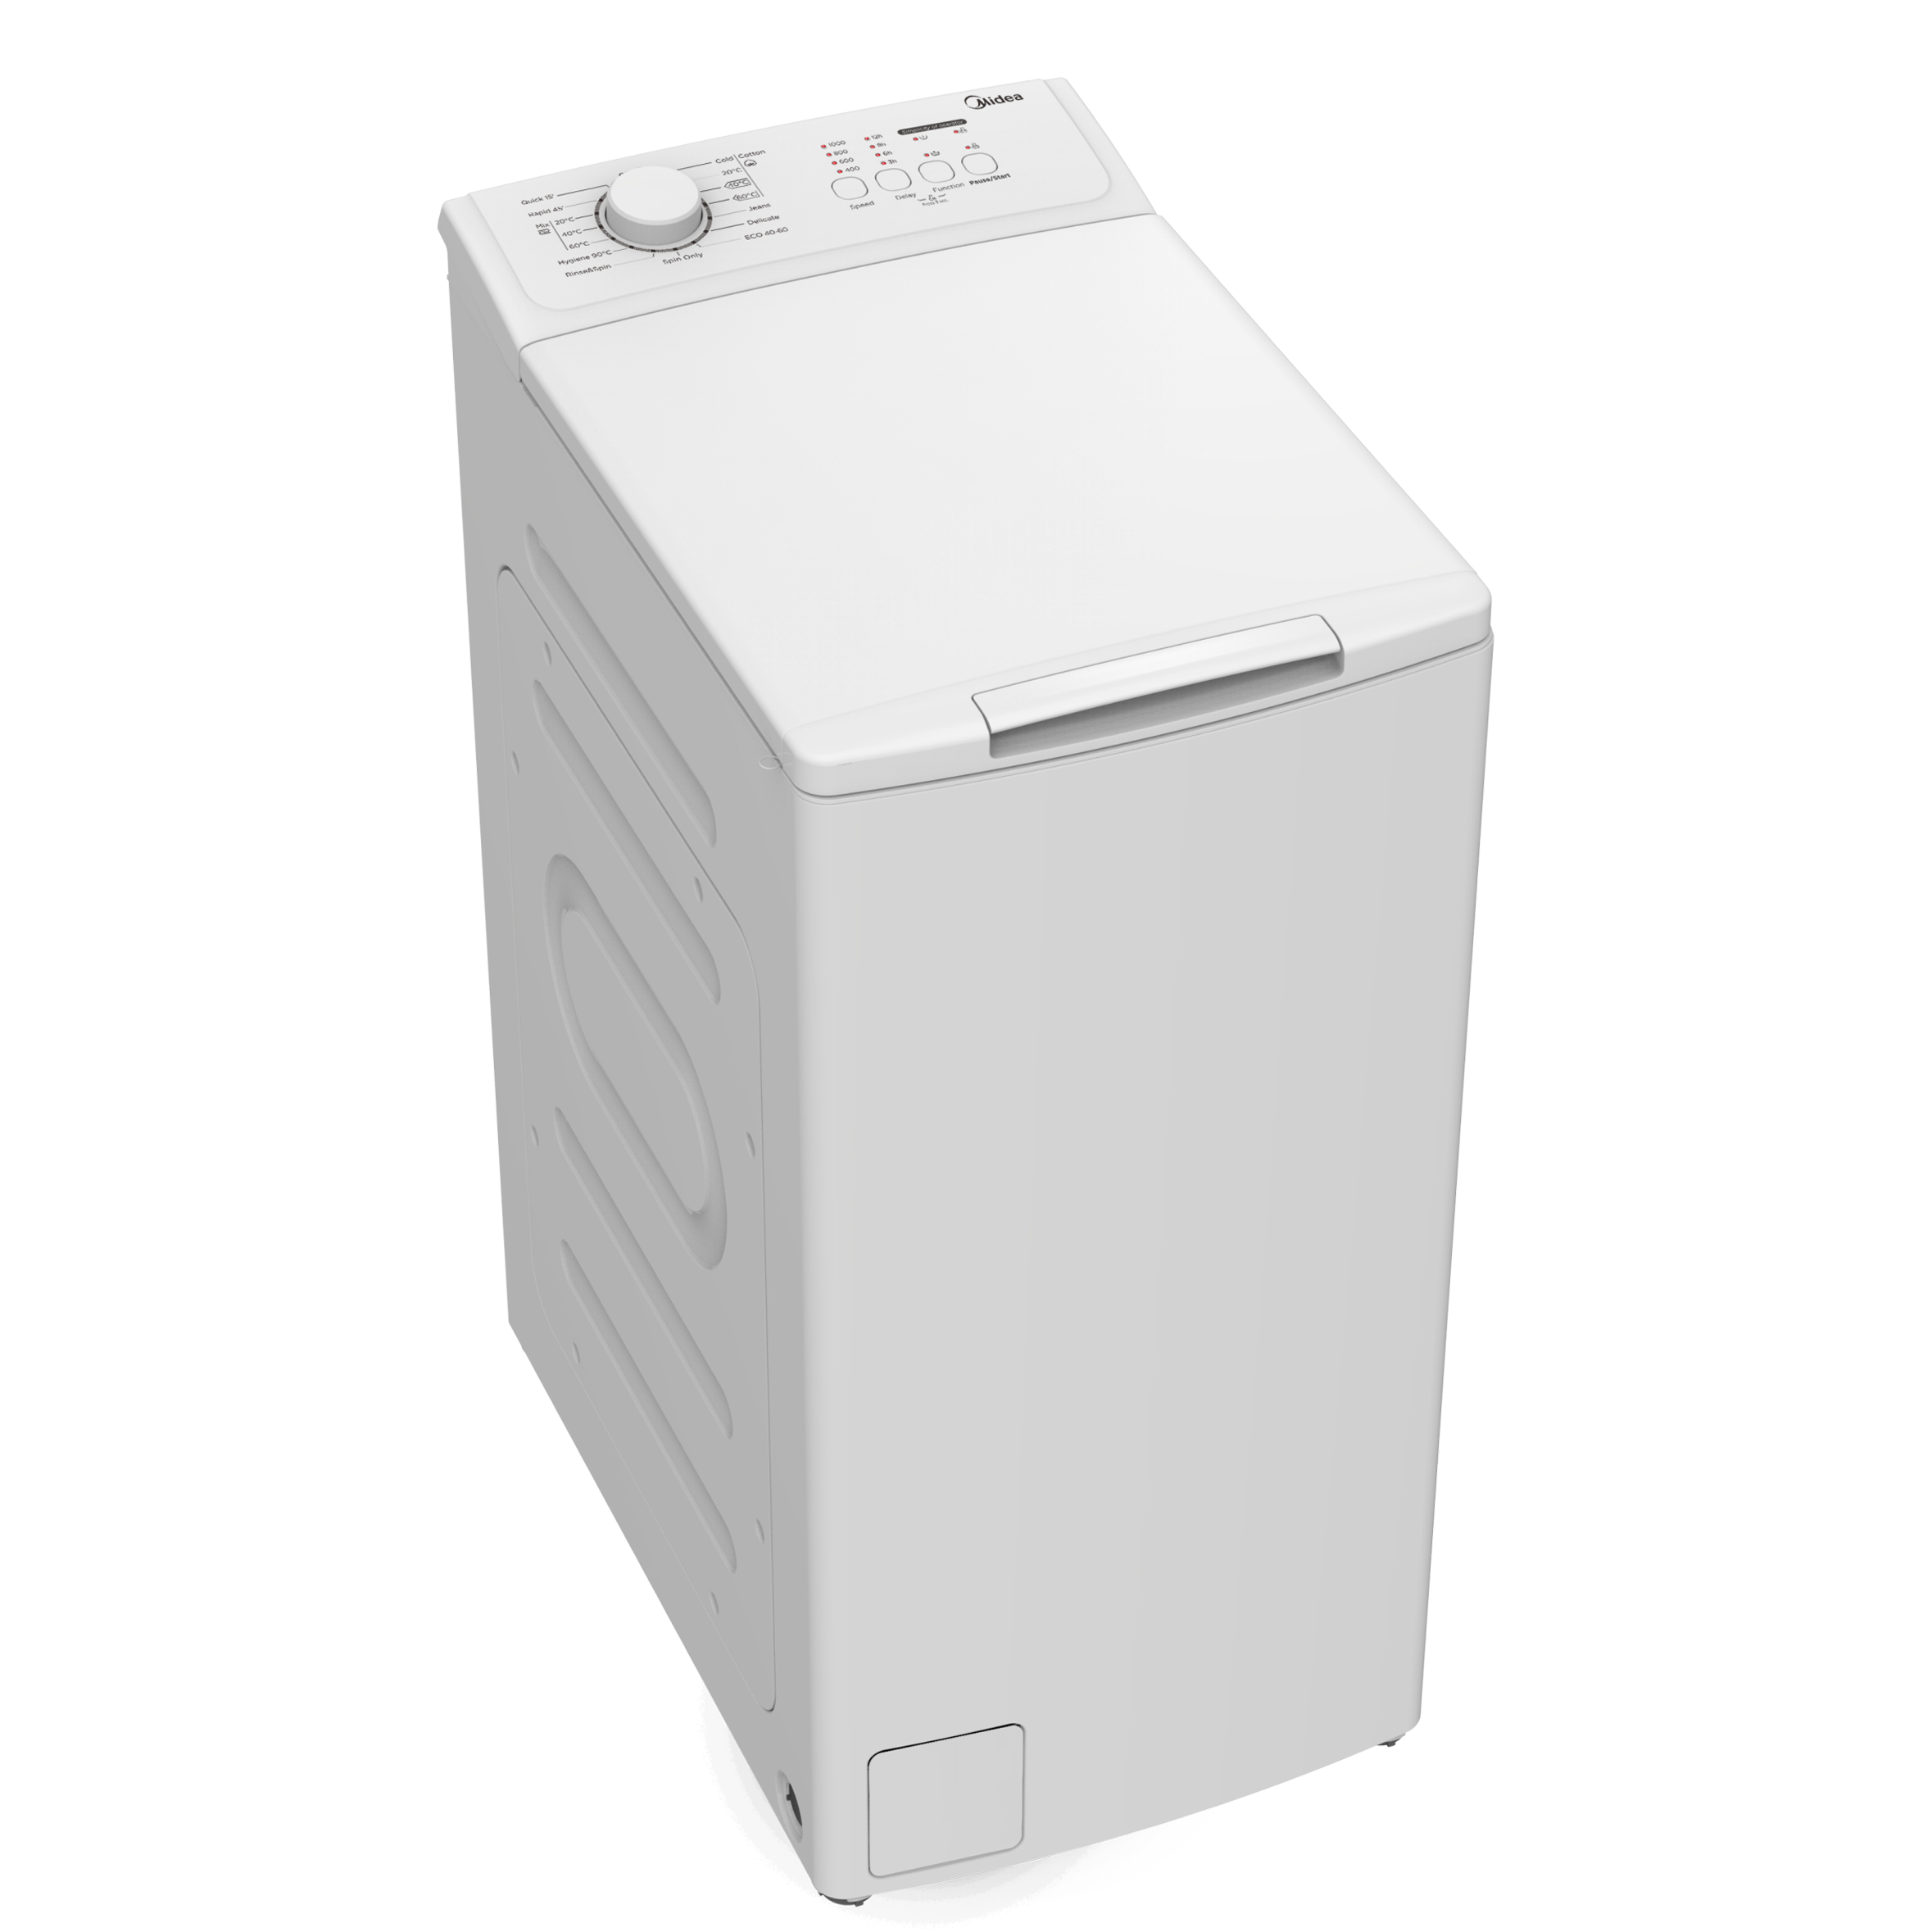 Top-In Series 15  Washer